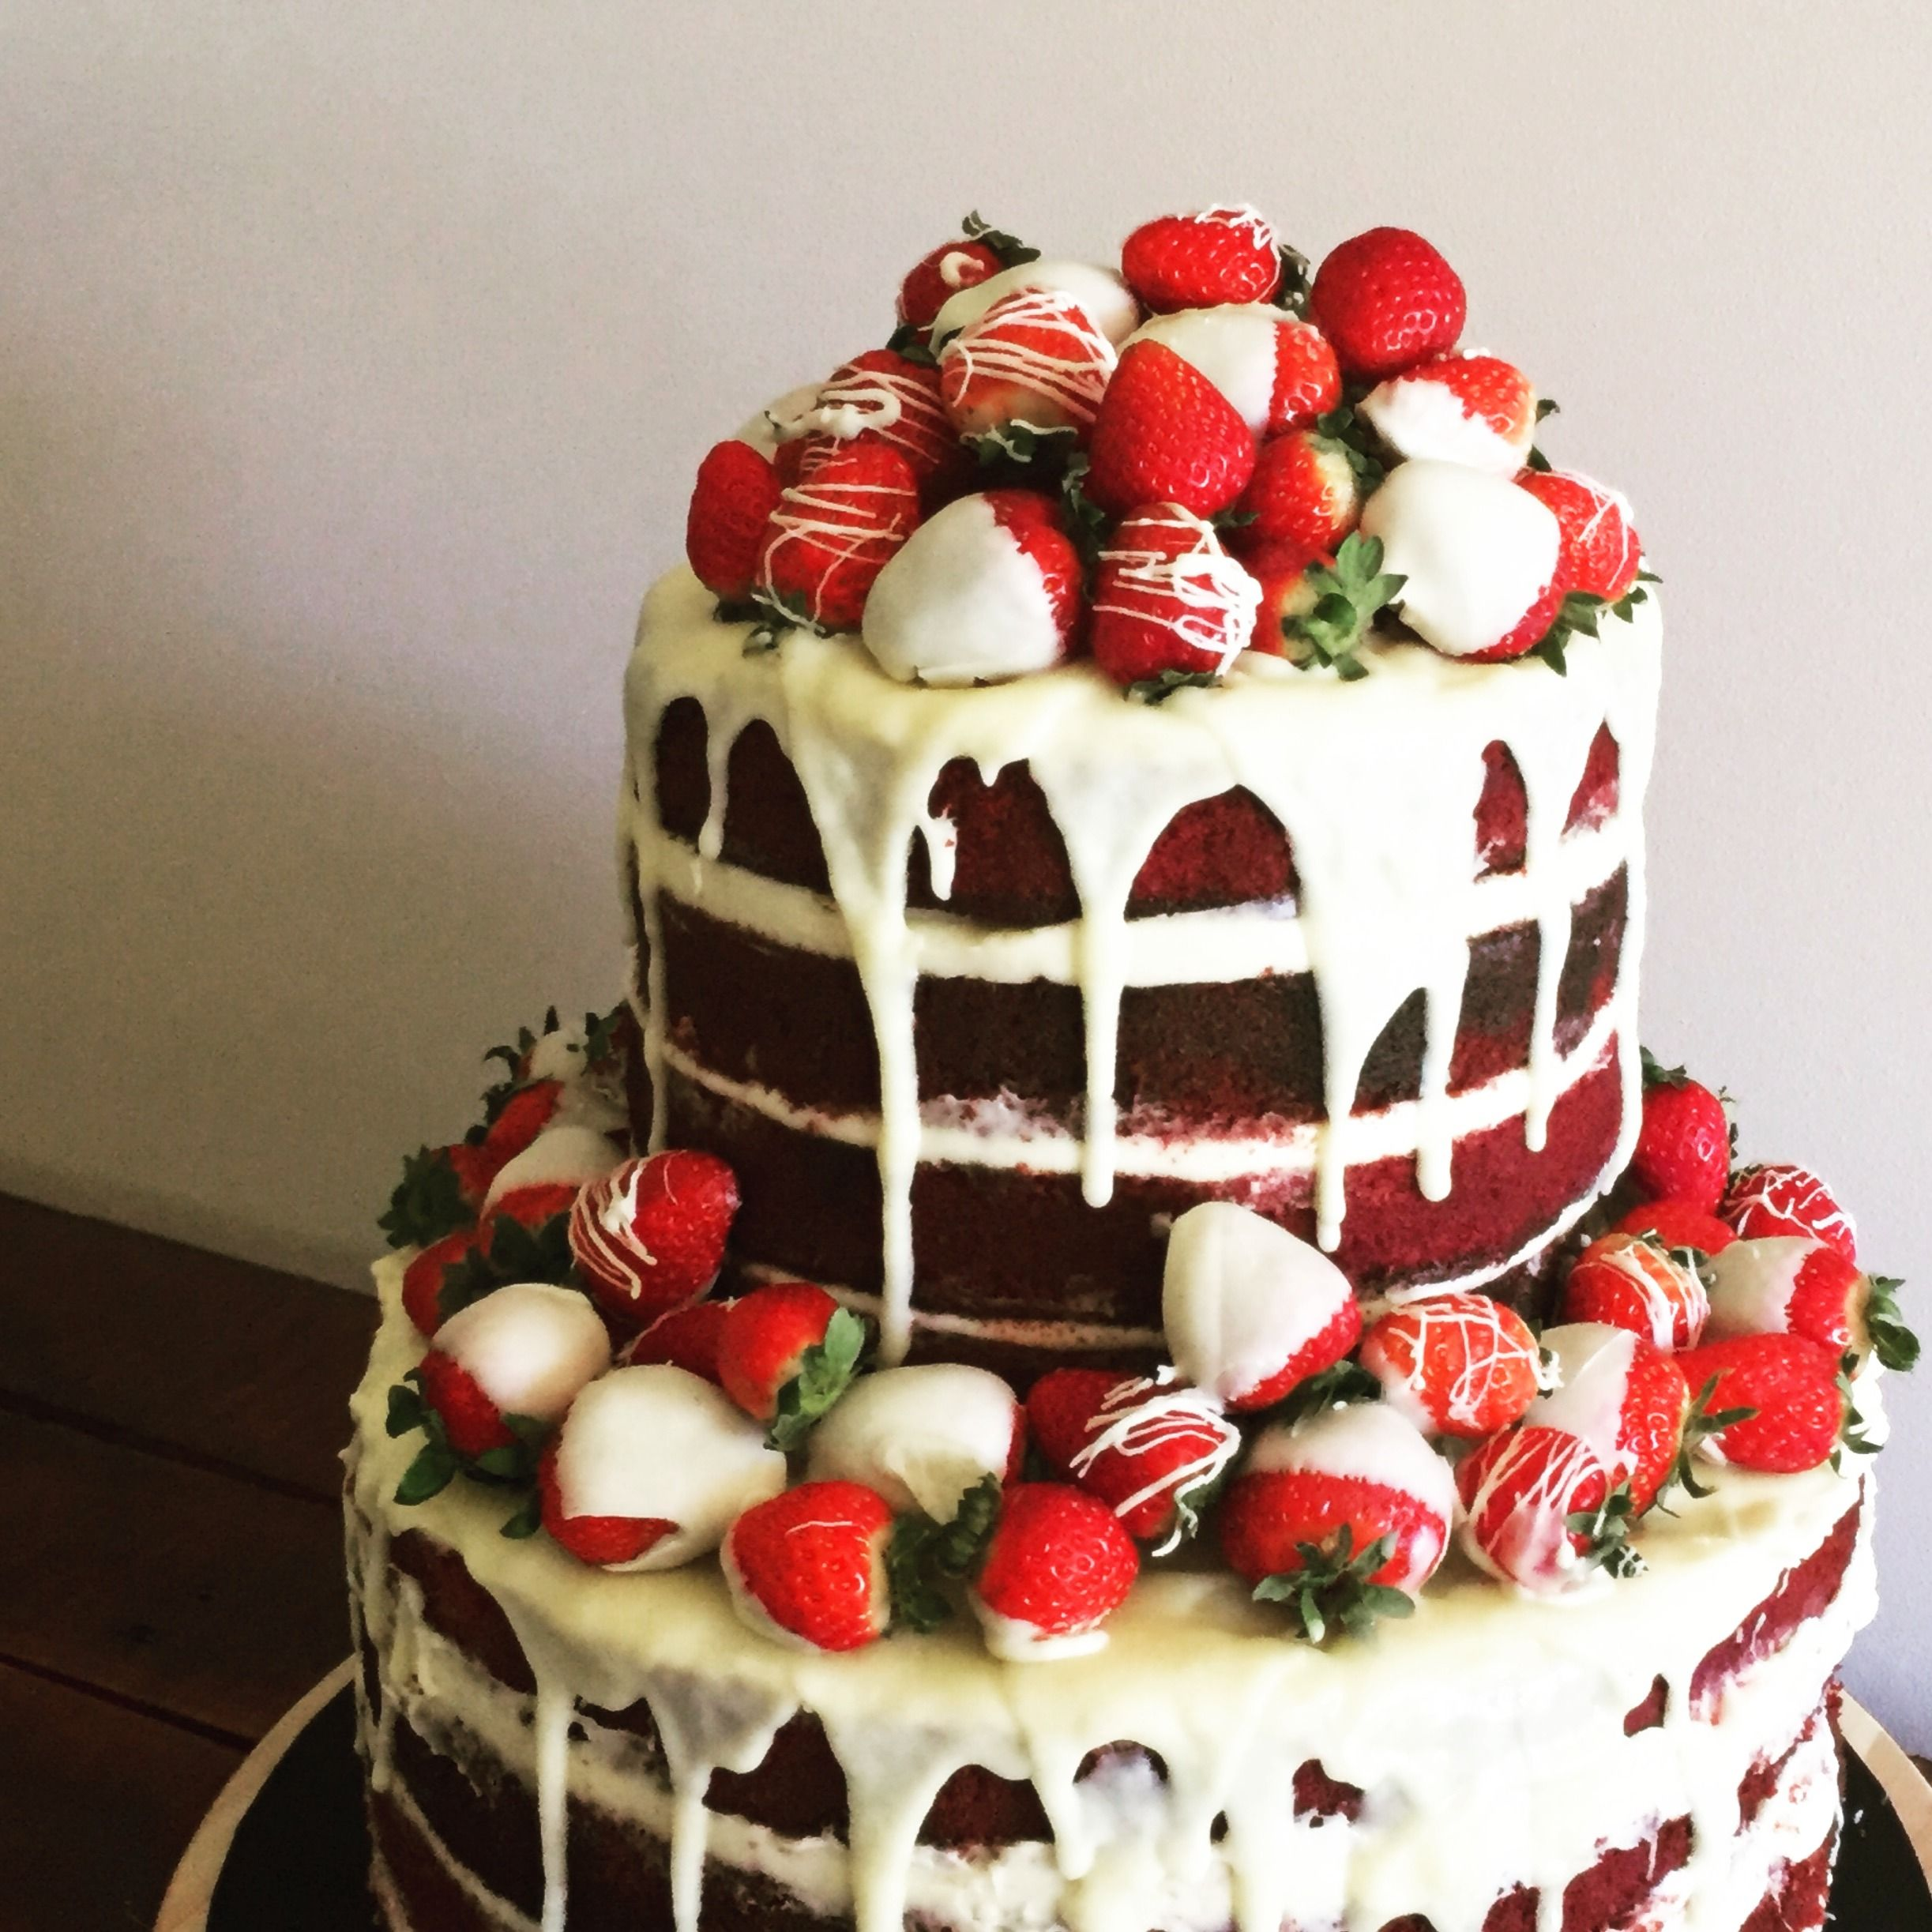 2 Tier Red Velvet Cake Layered With Cream Cheese Butter